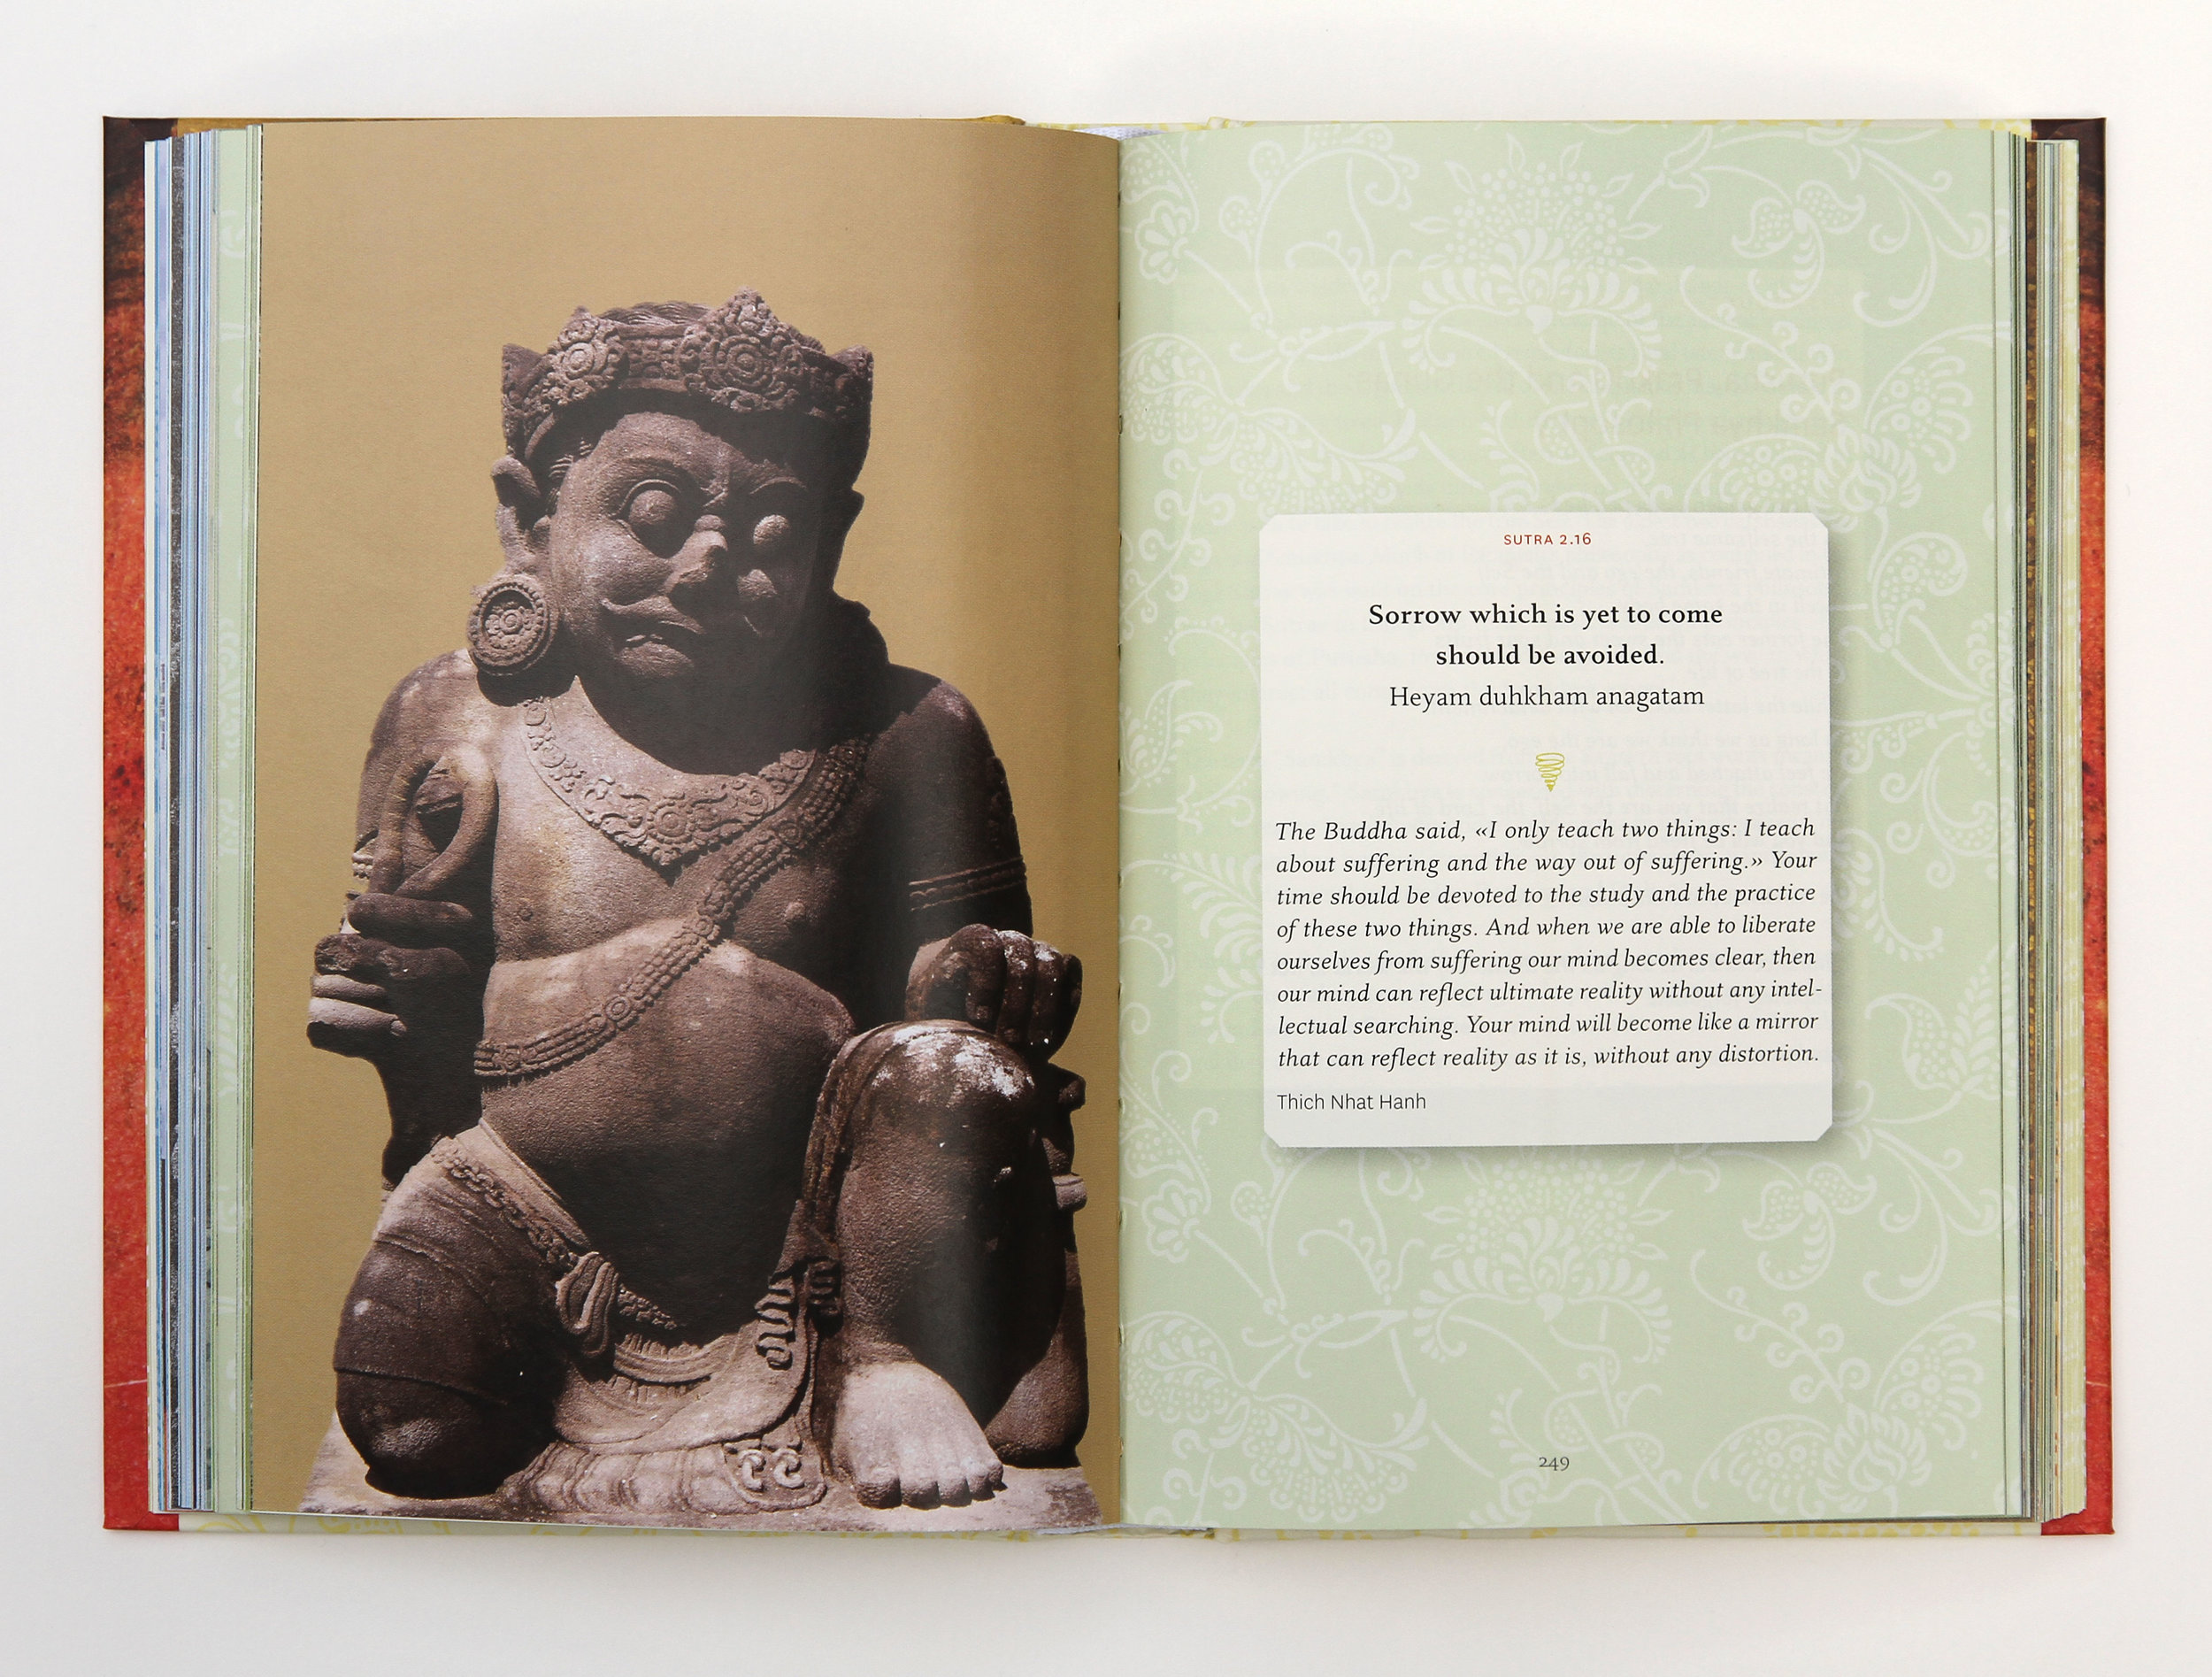 yoga_sutras_spreads_layered_cropped_3.jpg